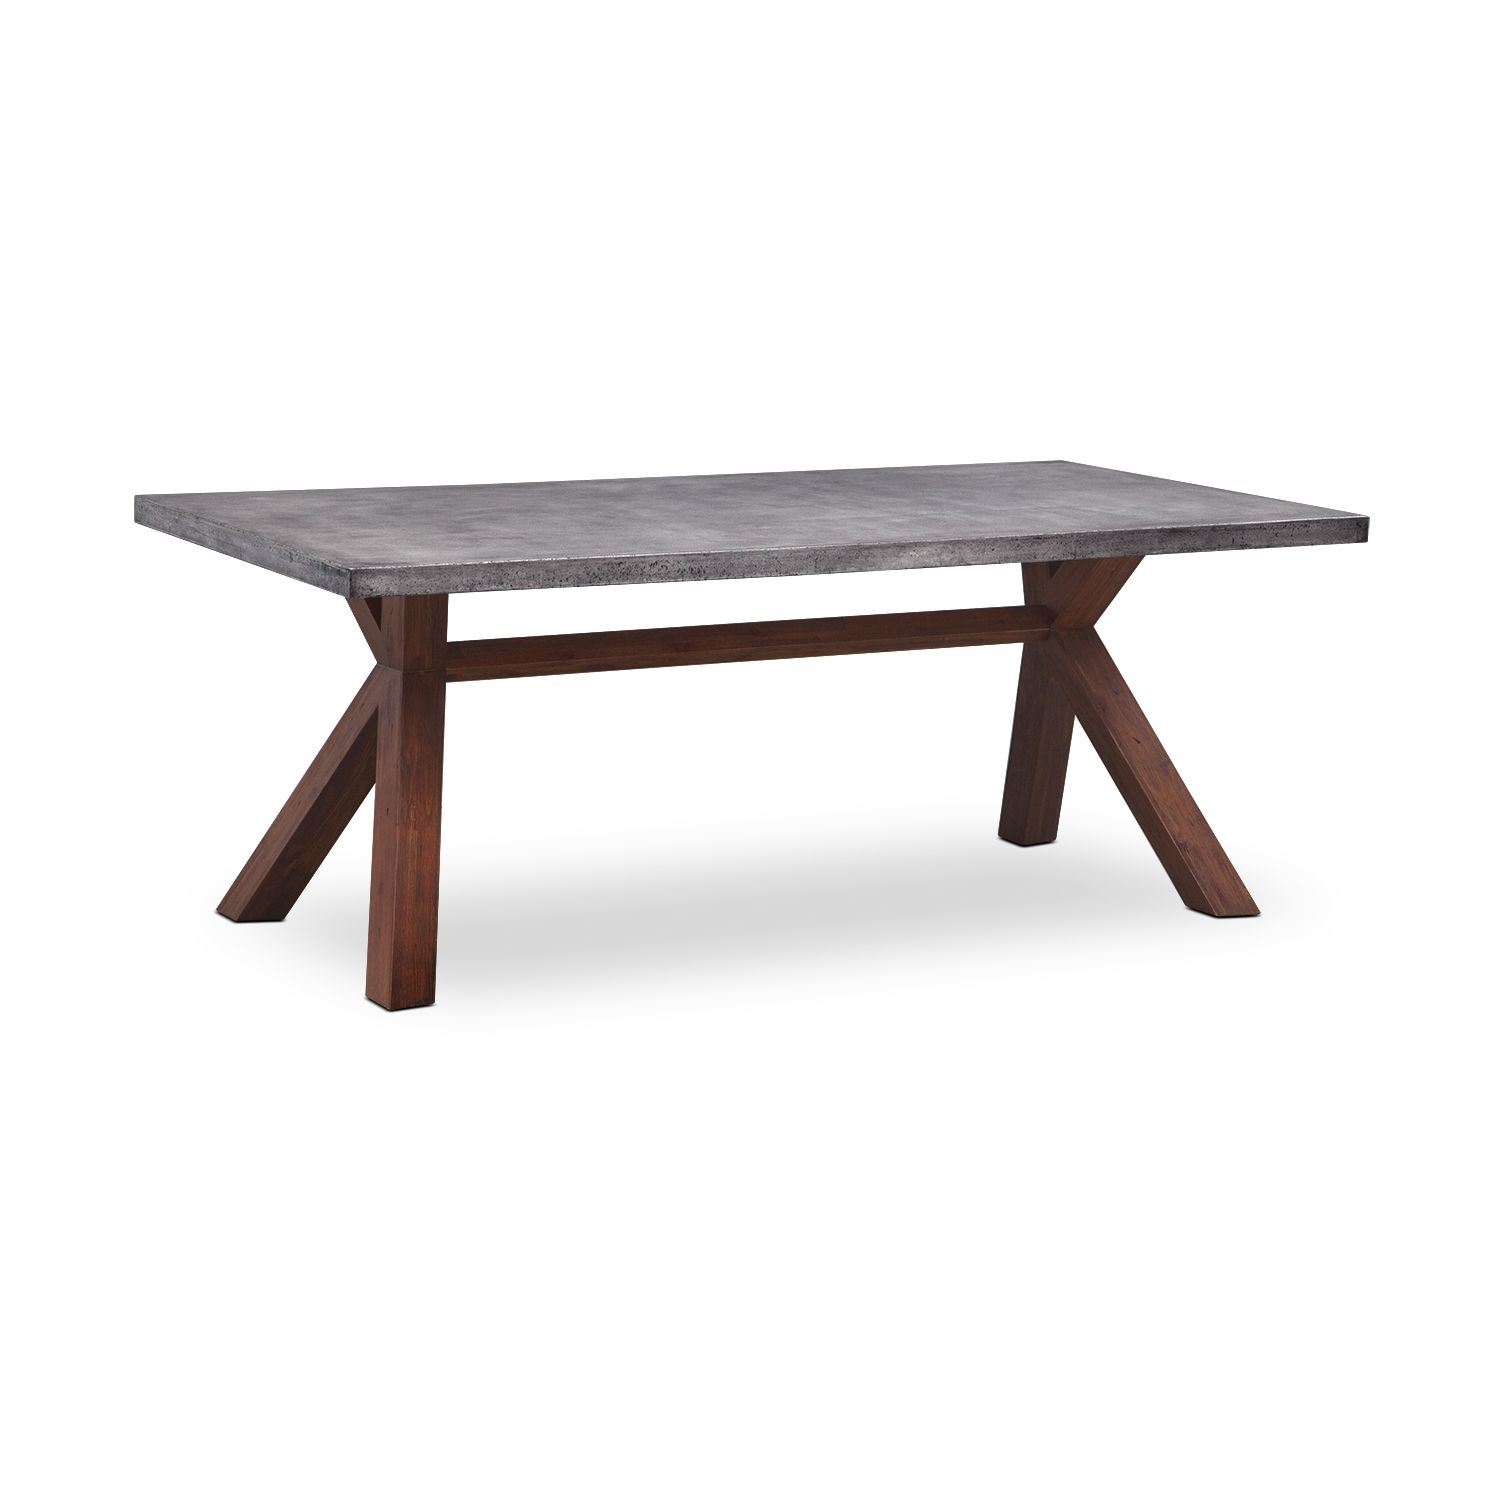 The Combination Of Contemporary Materials In Driscoll Dining Table Creates A Modern